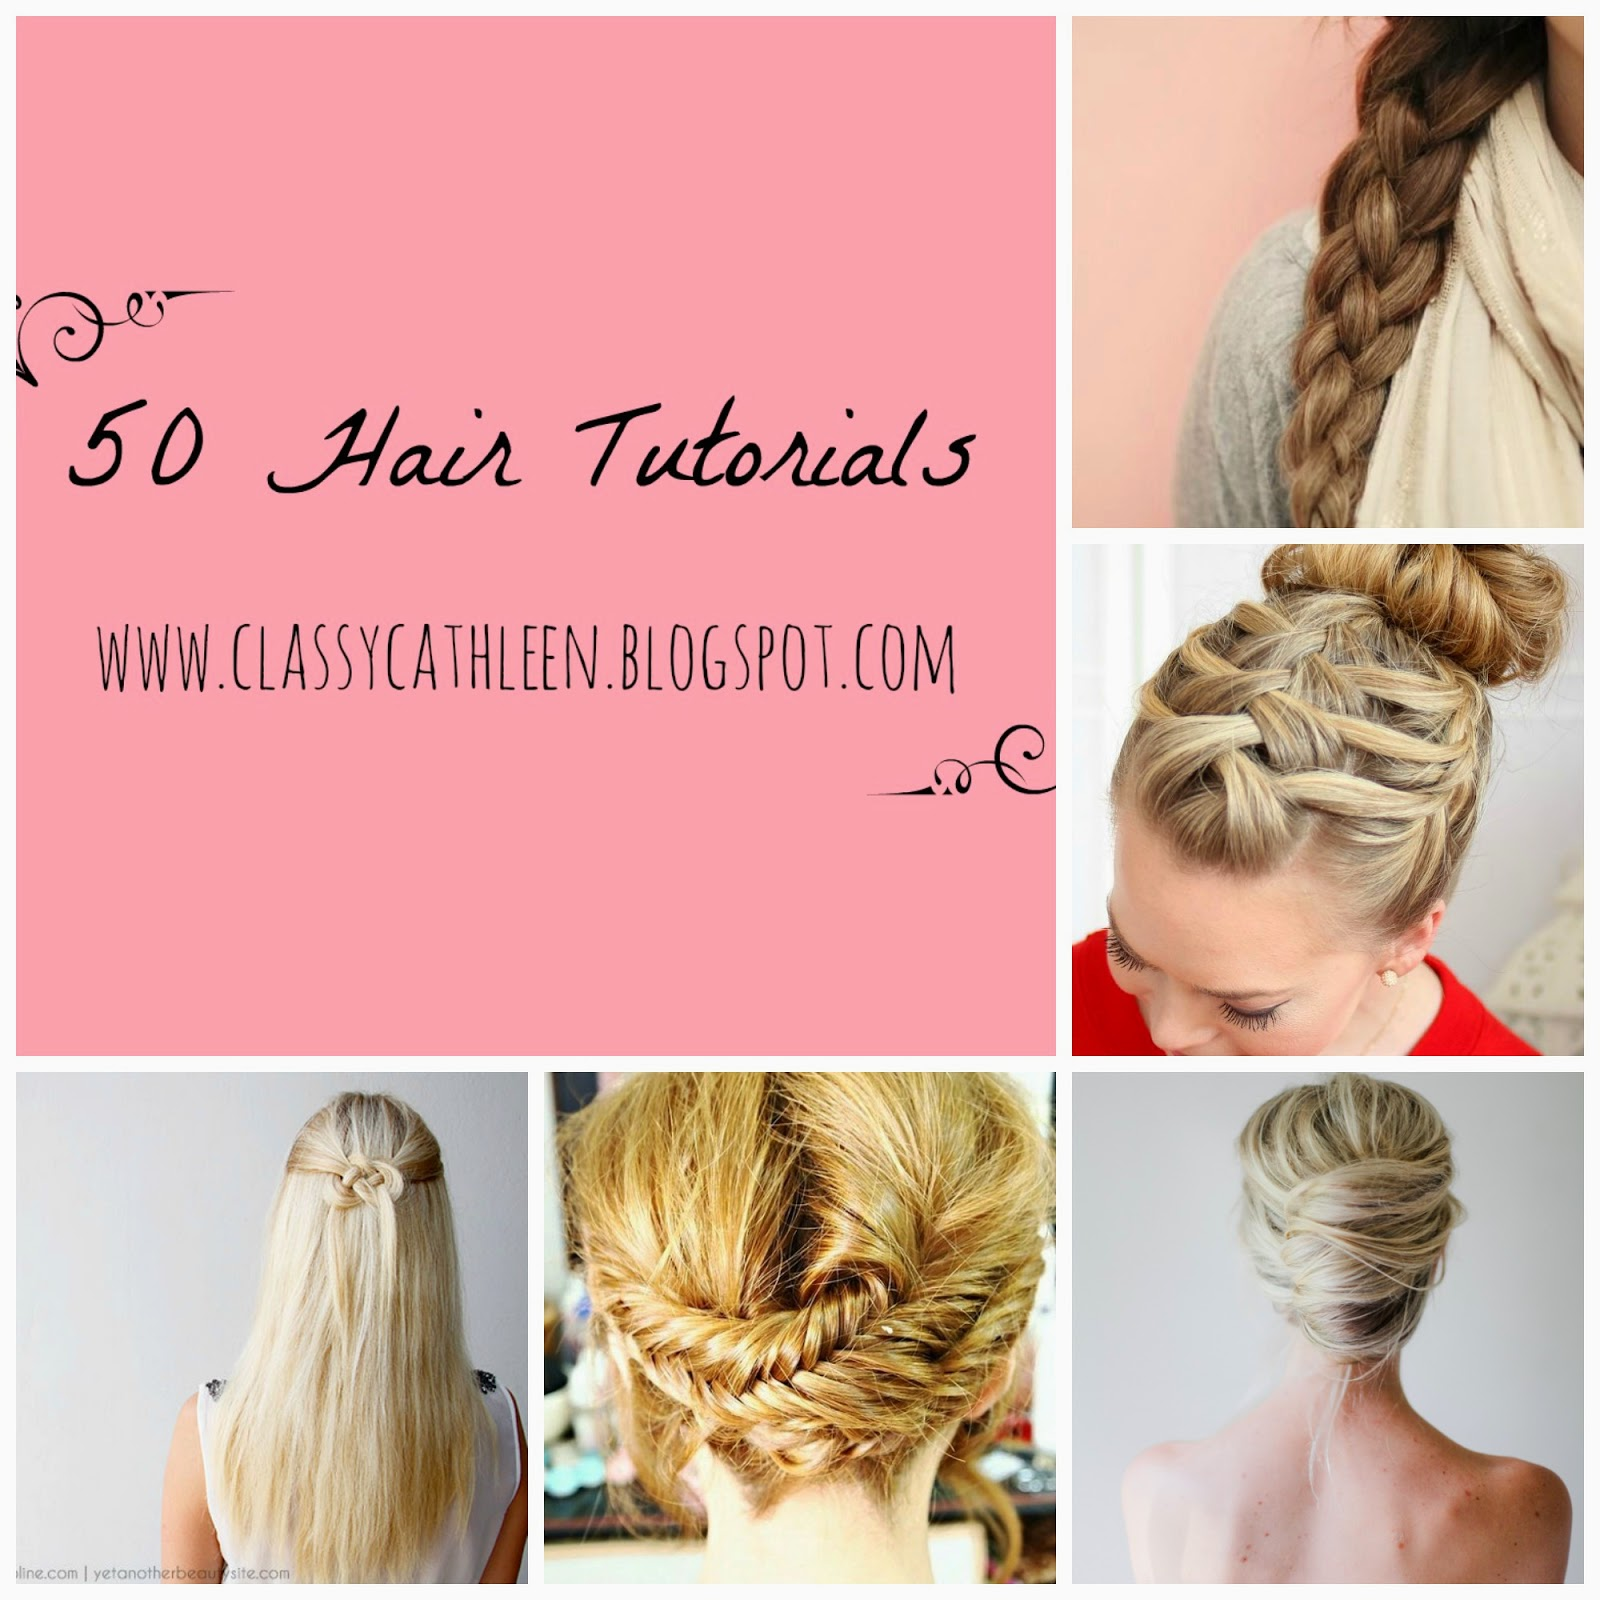 classy cathleen: 50 hairstyles and tips that every girl should know